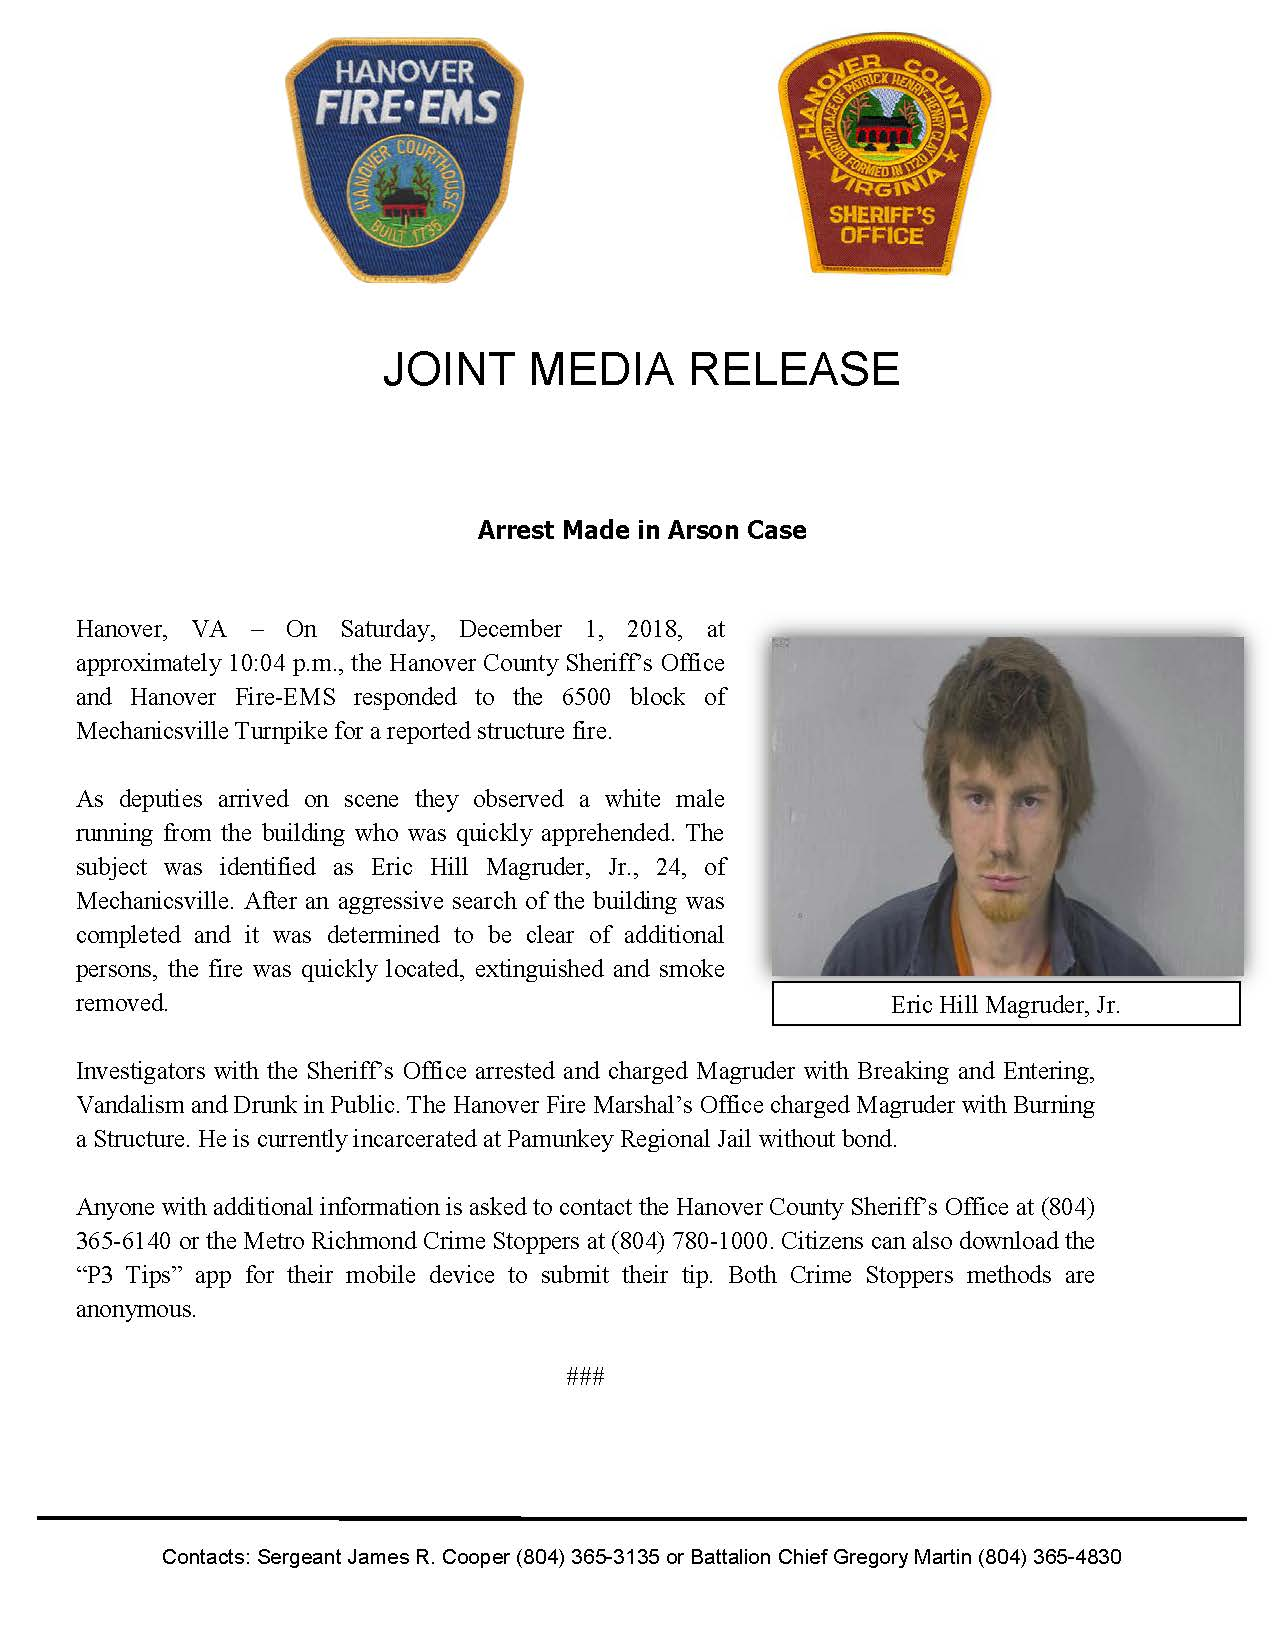 Joint Release- Arrest Made in Arson Case- December 3, 2018